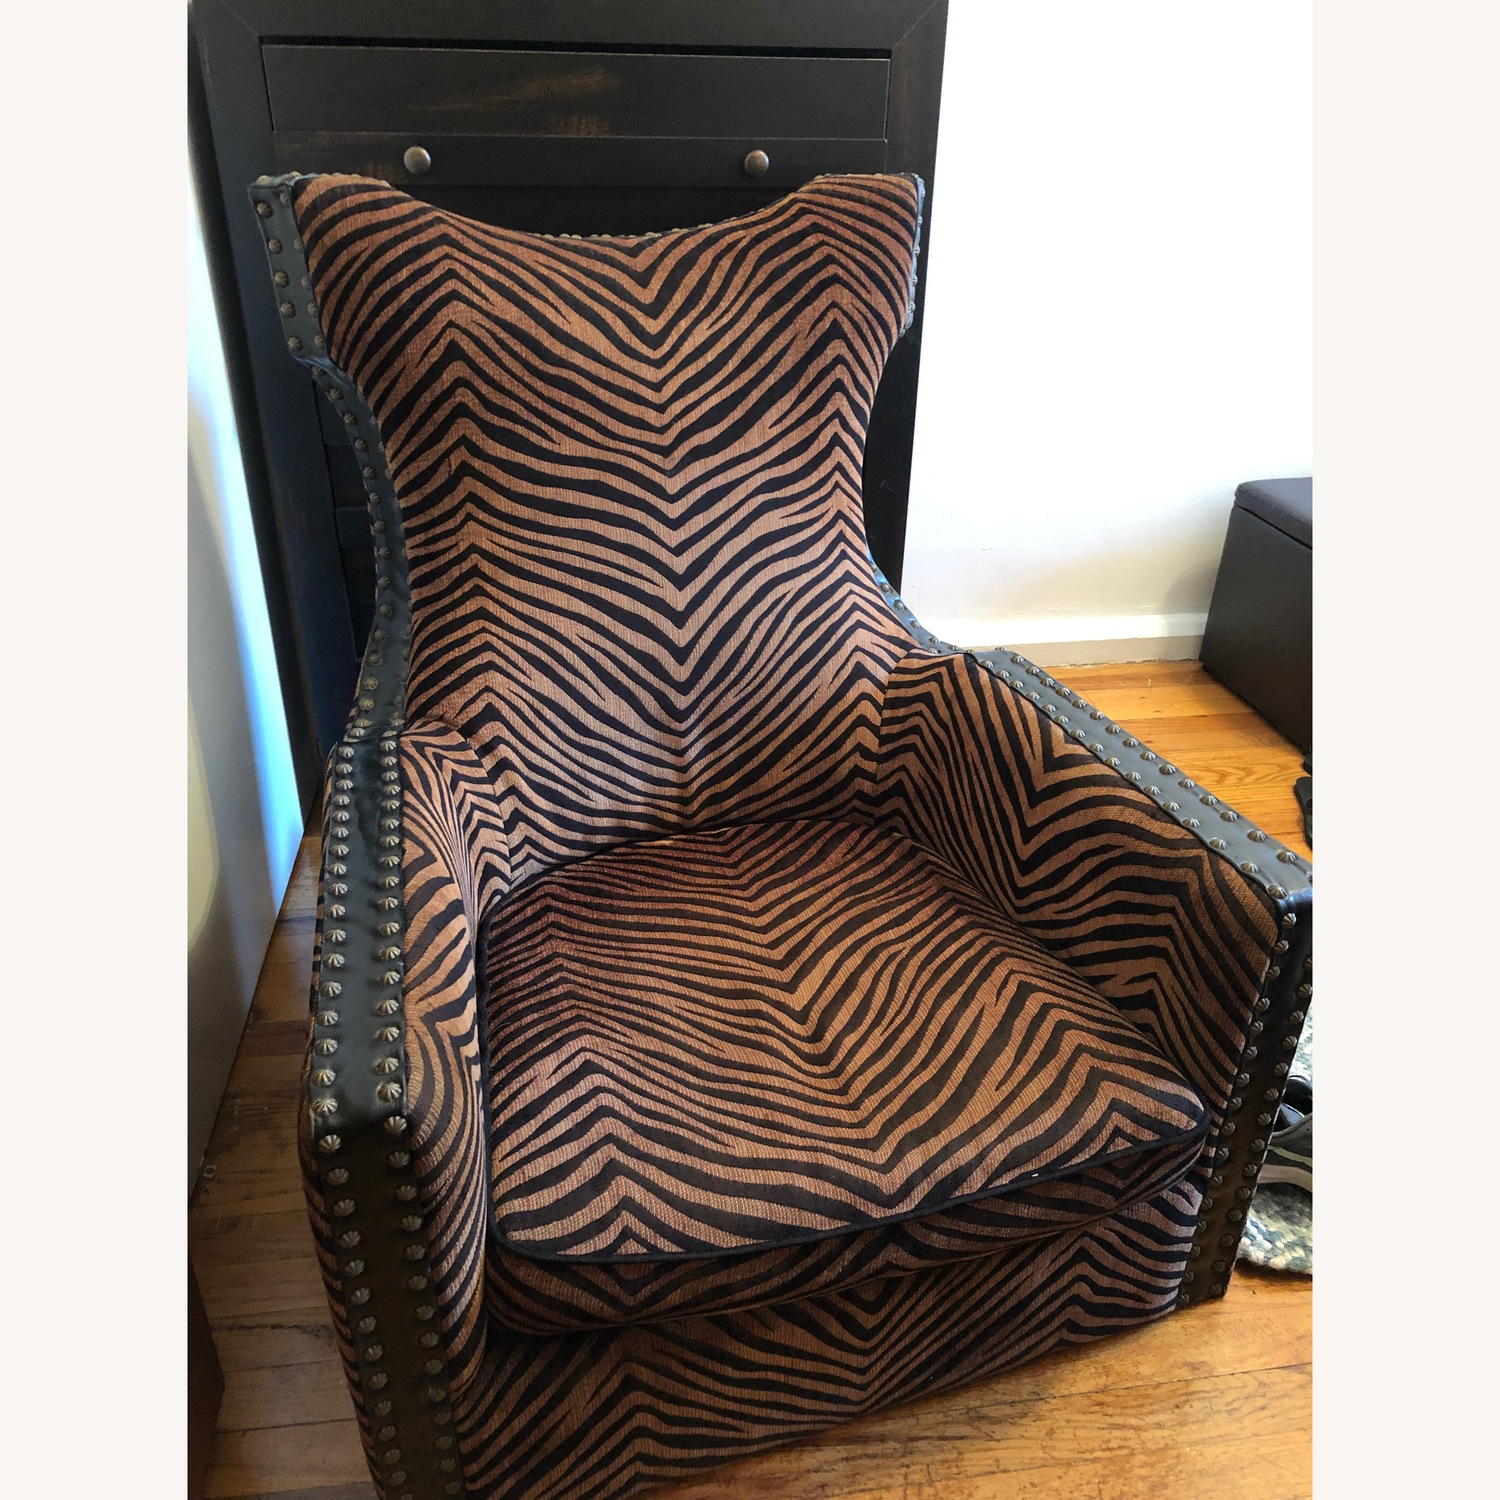 Uttermost Zebra Brow and Black Chair - image-1